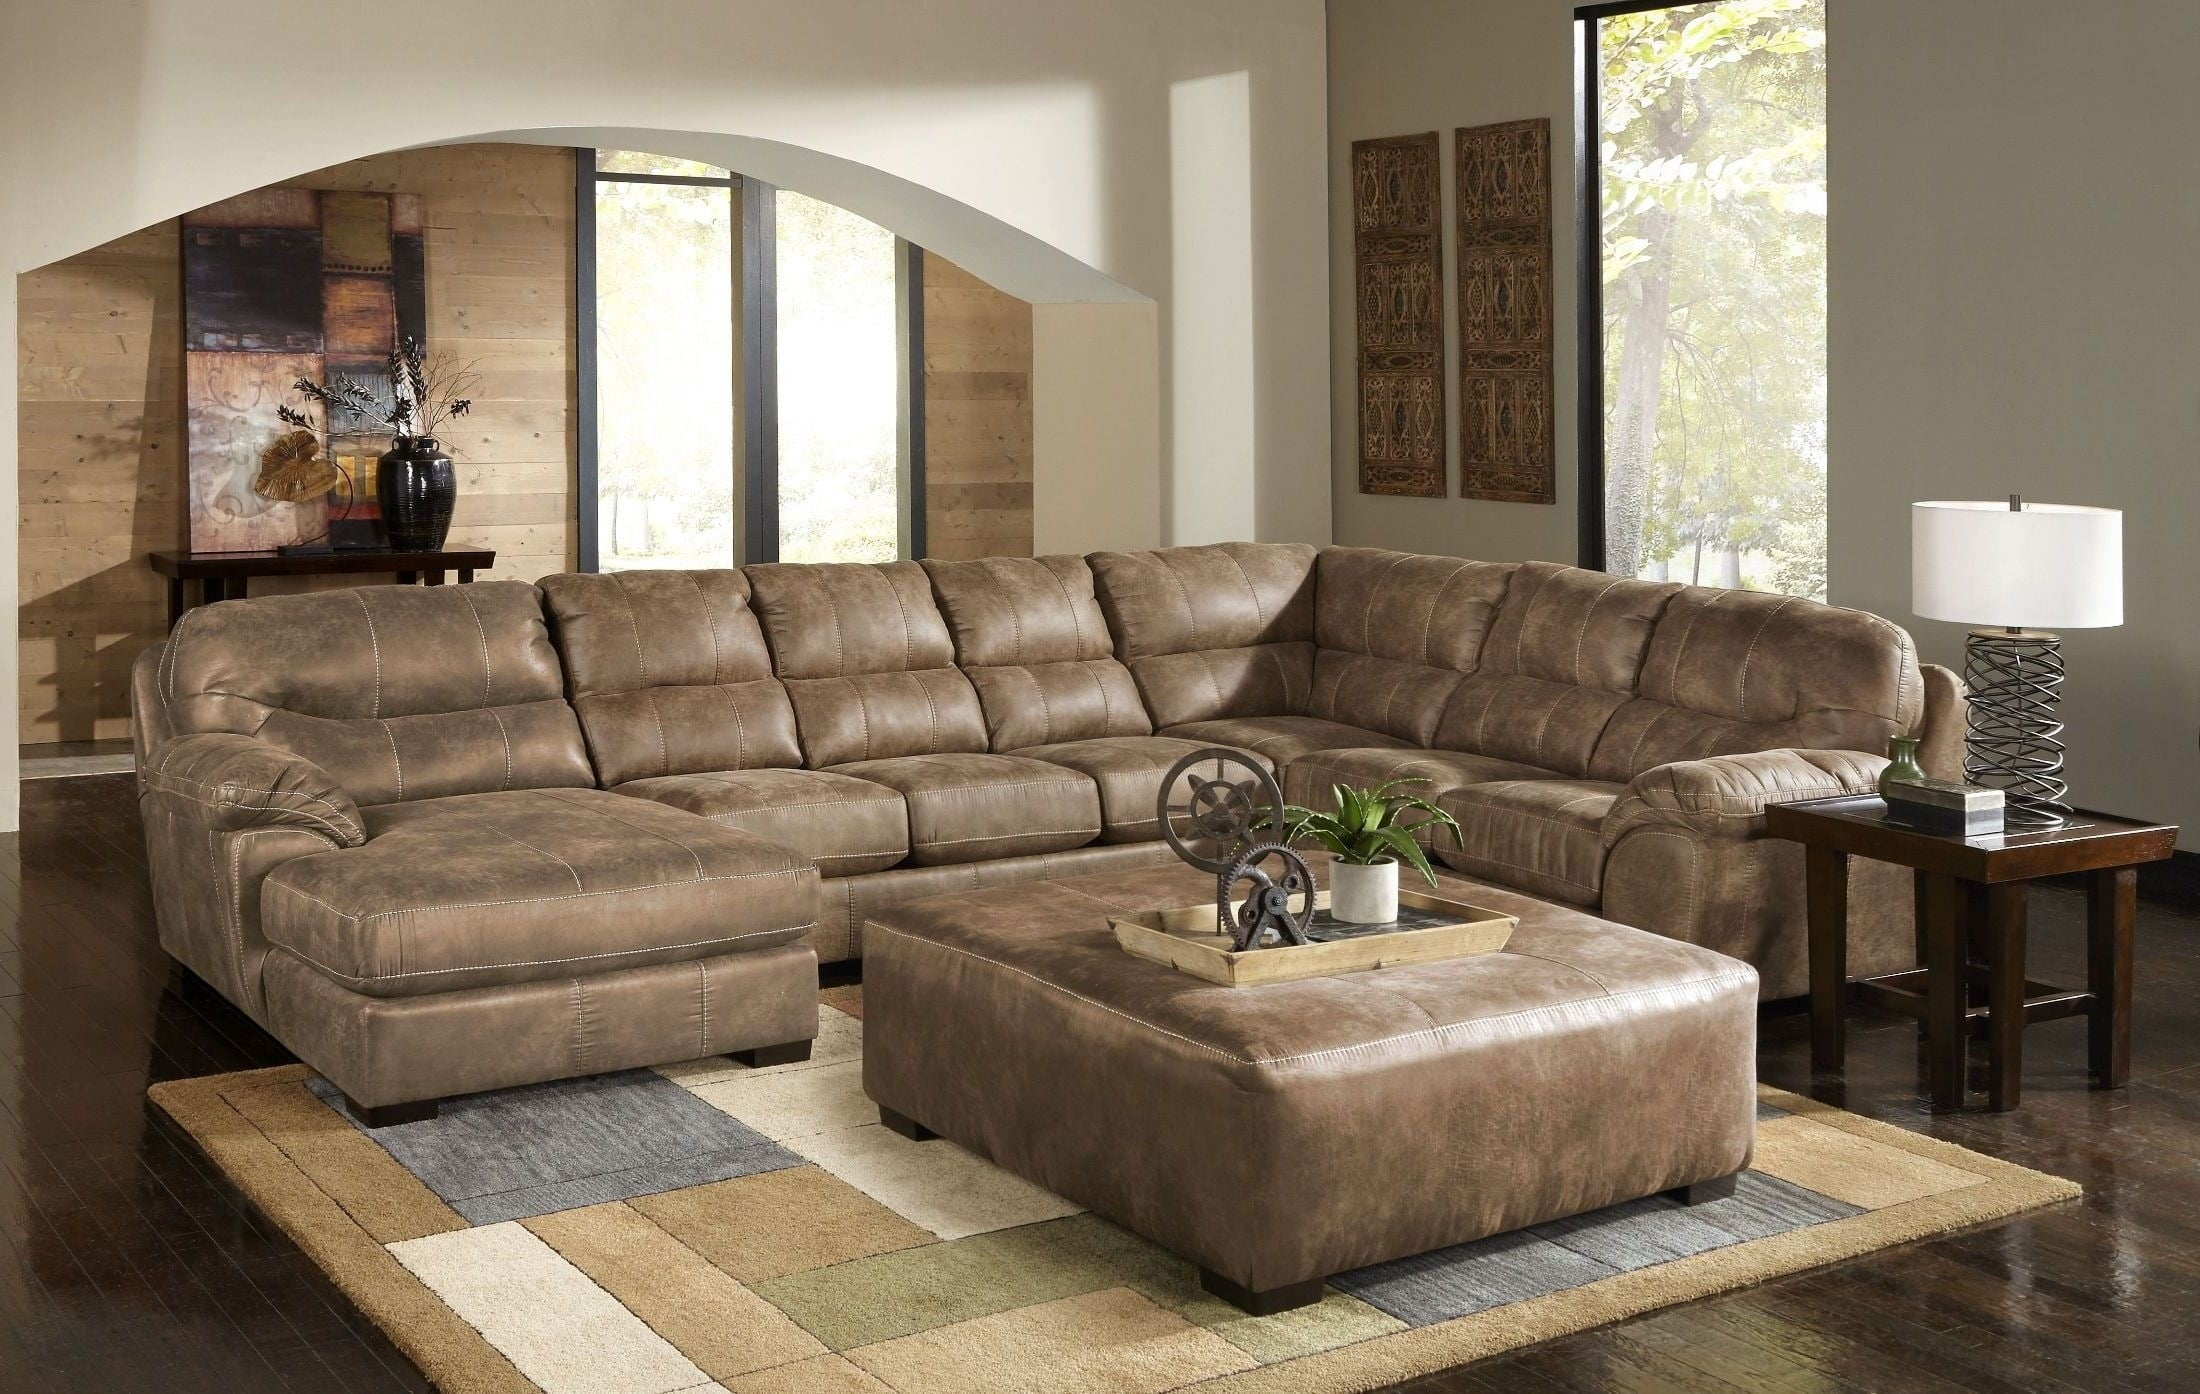 Grant Silt Laf Chaise Sectional, 4453 75 122749302749, Jackson Inside Avery 2 Piece Sectionals With Laf Armless Chaise (View 10 of 25)